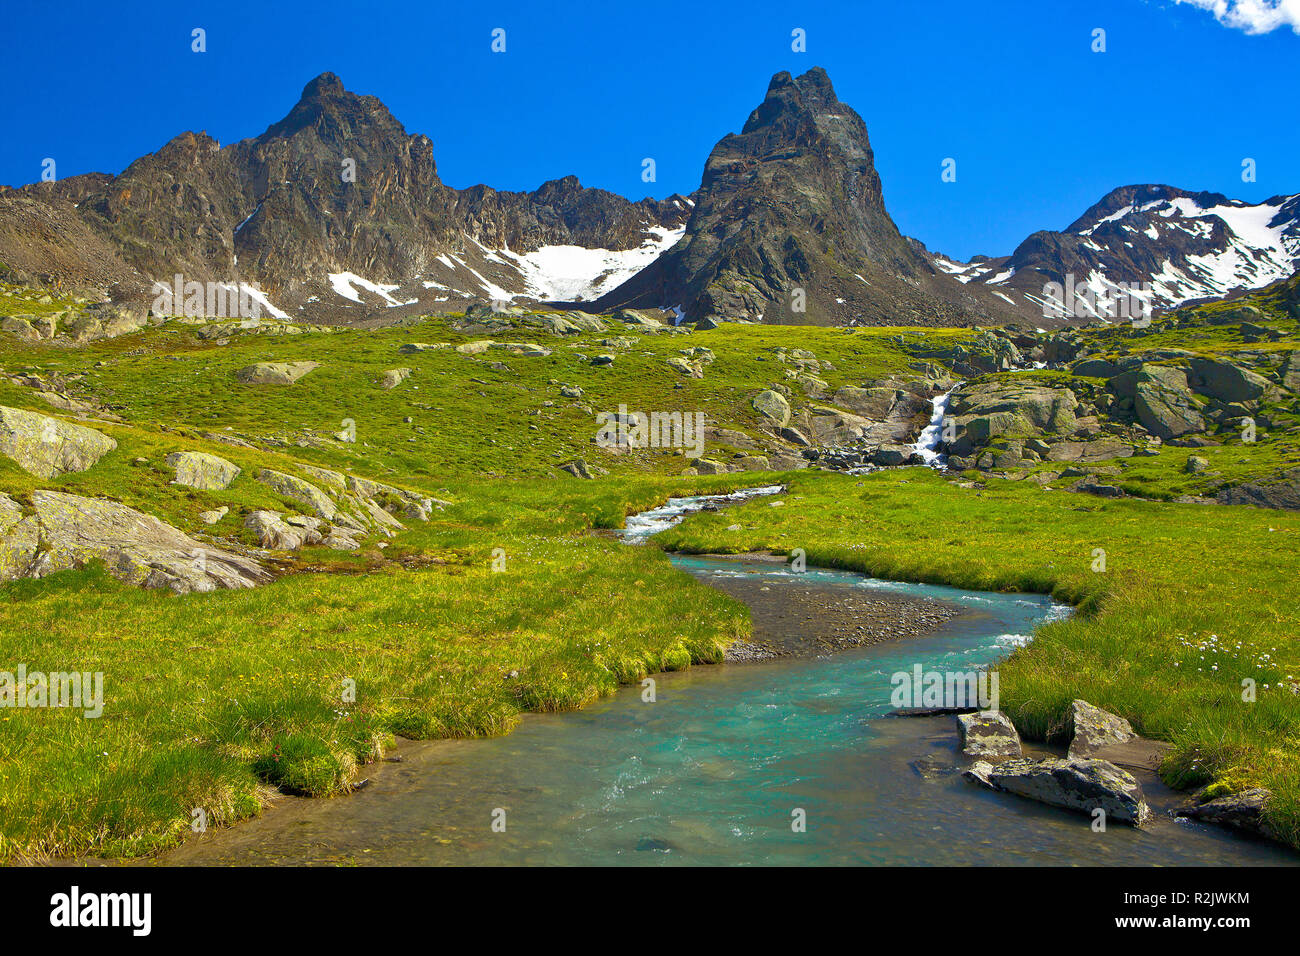 Austria, Tyrol, Ötztal Alps, mountain stream in the Glockturm ridge